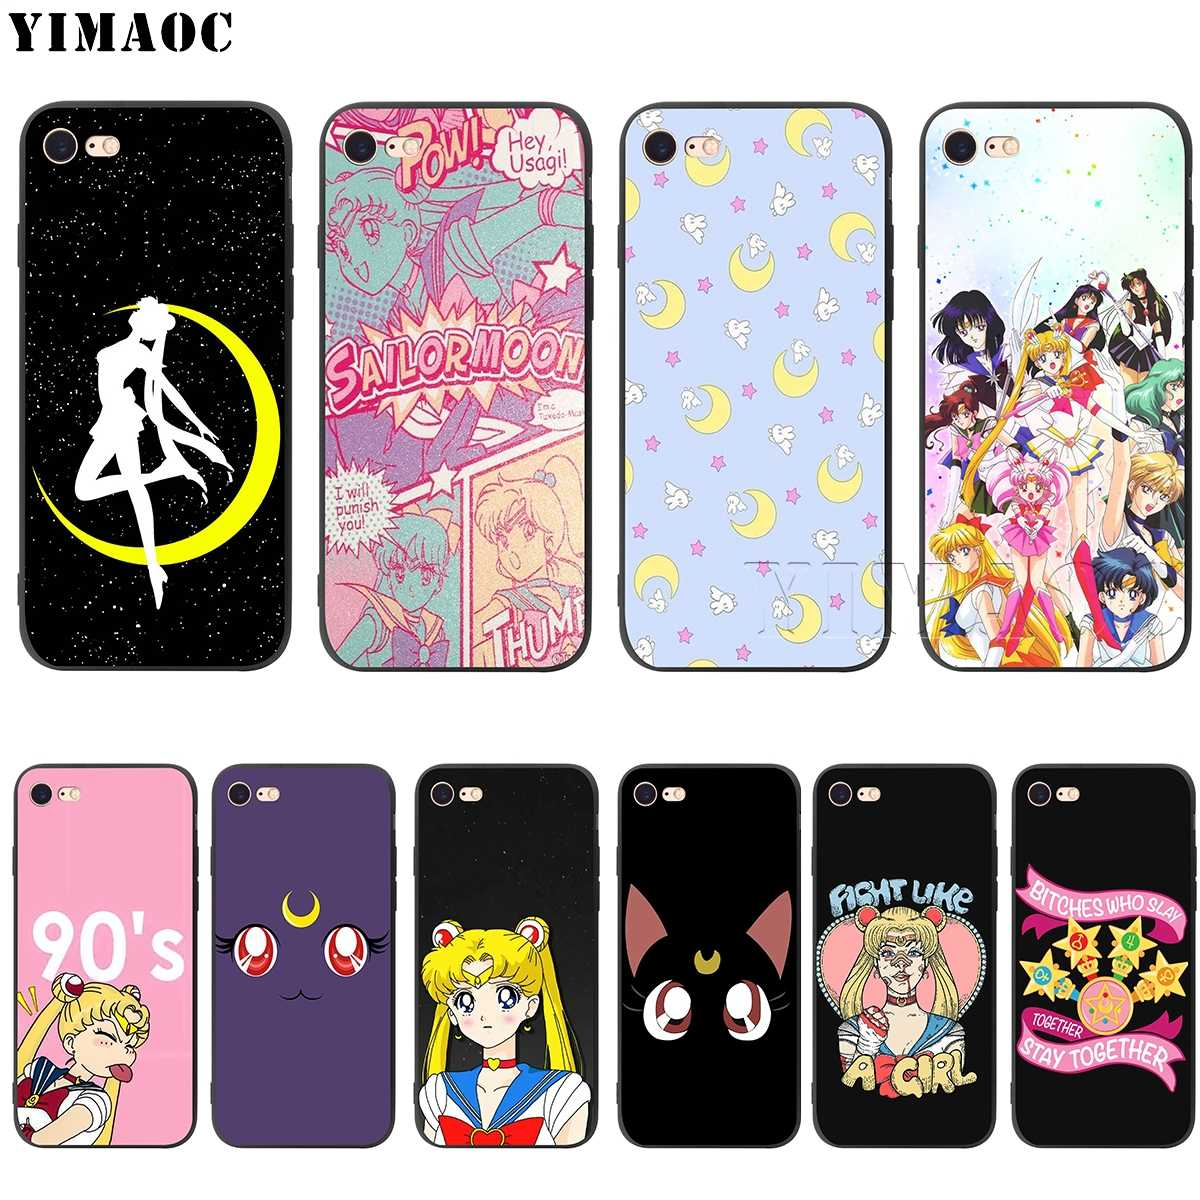 Yimaoc Sailor Moon Silikon Lembut Case untuk iPhone 11 Pro XS Max XR X 8 7 6 6S PLUS 5 5S SE